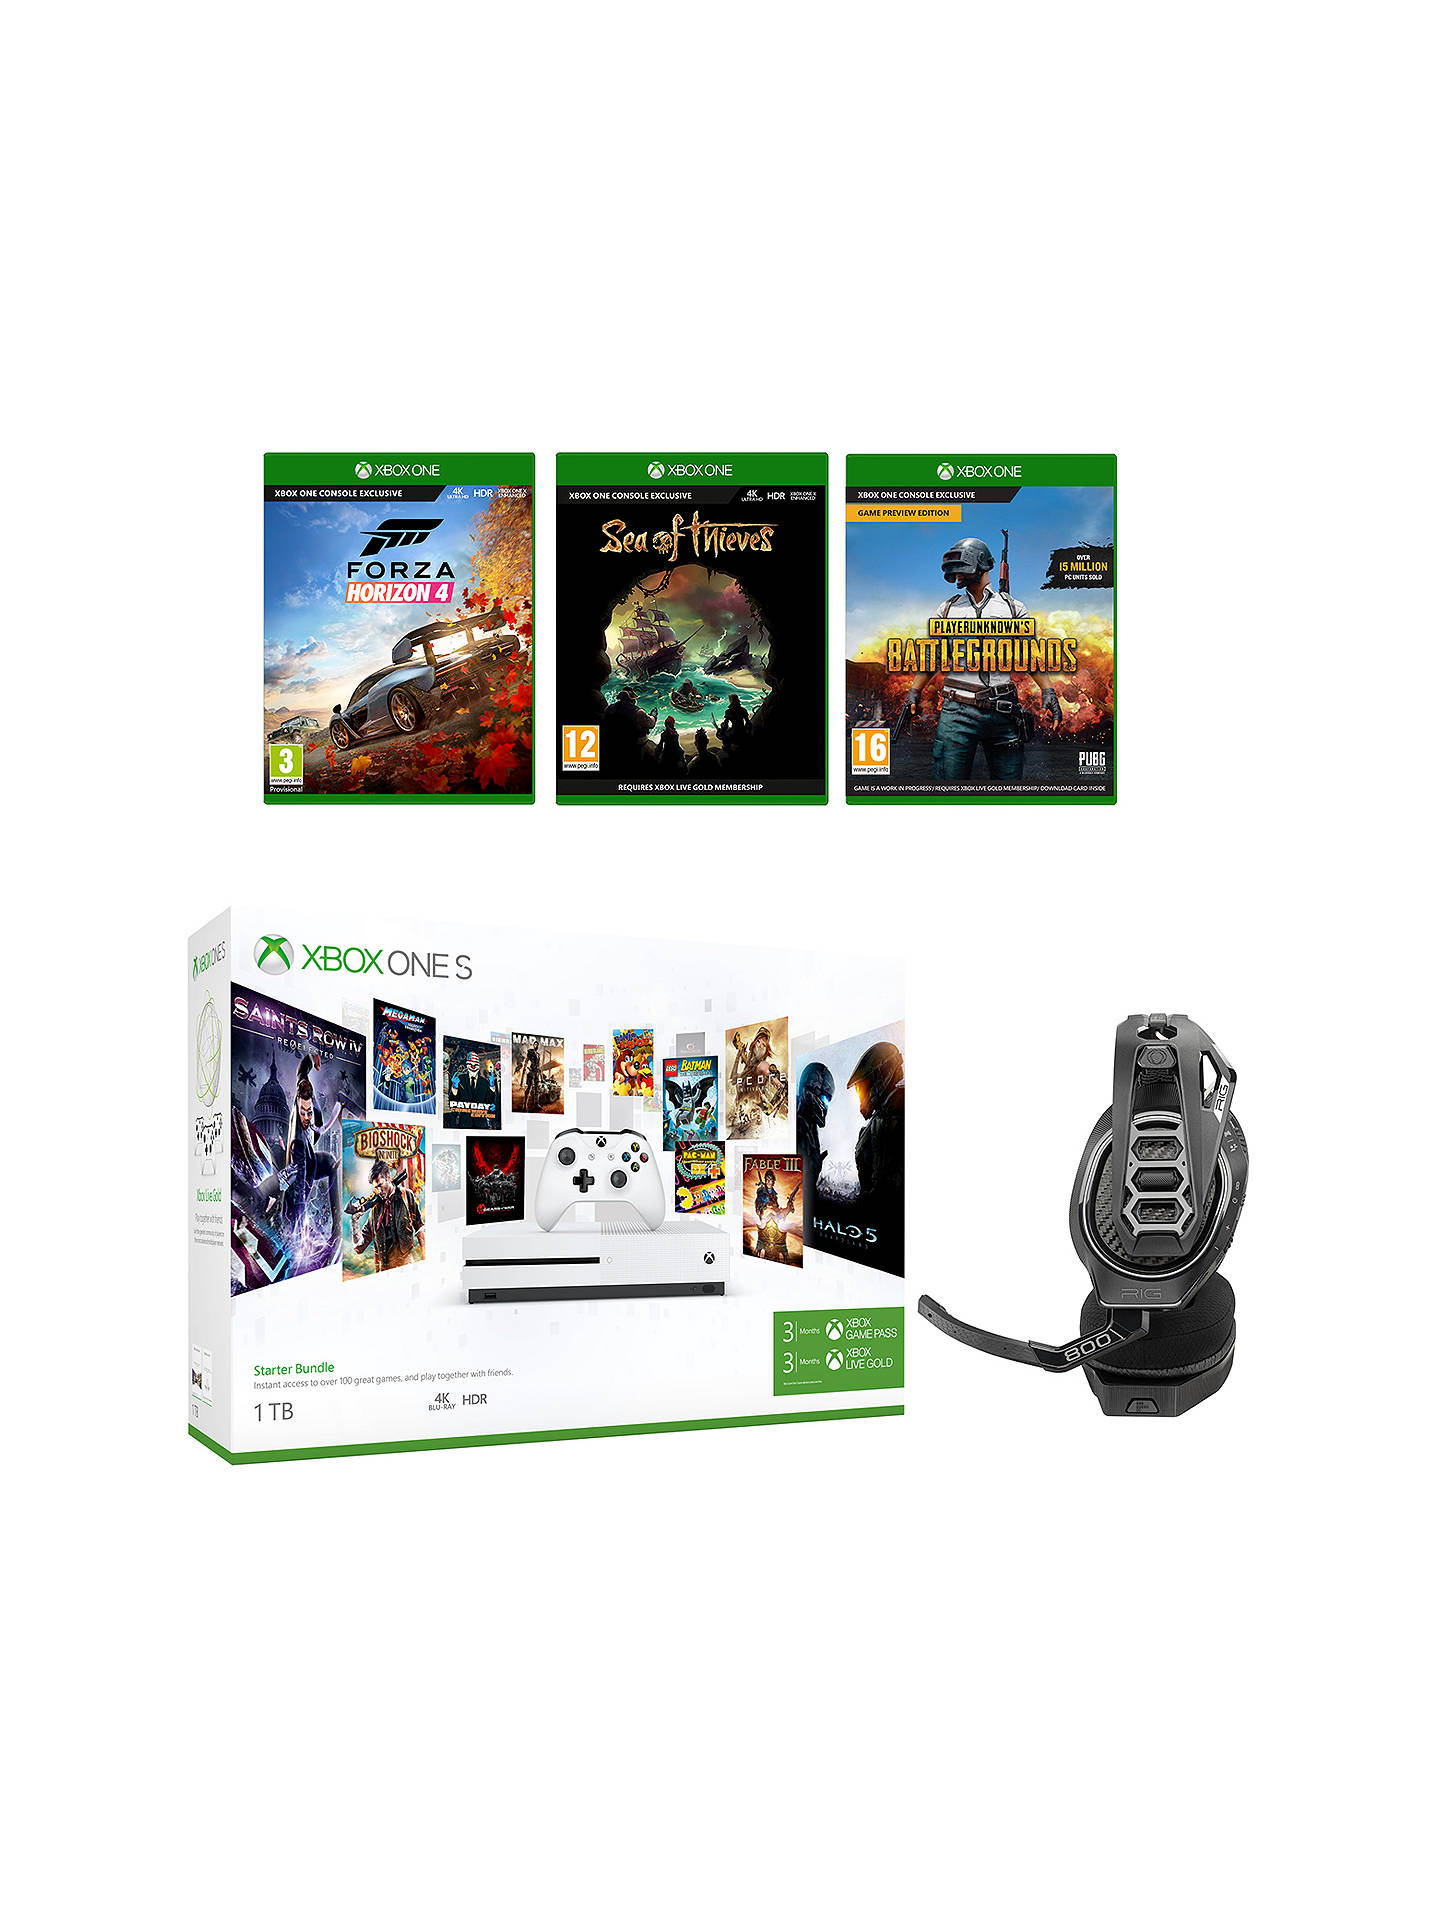 Microsoft Xbox One S Console, 1TB, with Wireless Controller and  PlayerUnknown's Battlegrounds, Forza Horizon 4, Sea of Thieves and RIG  400HX Wireless